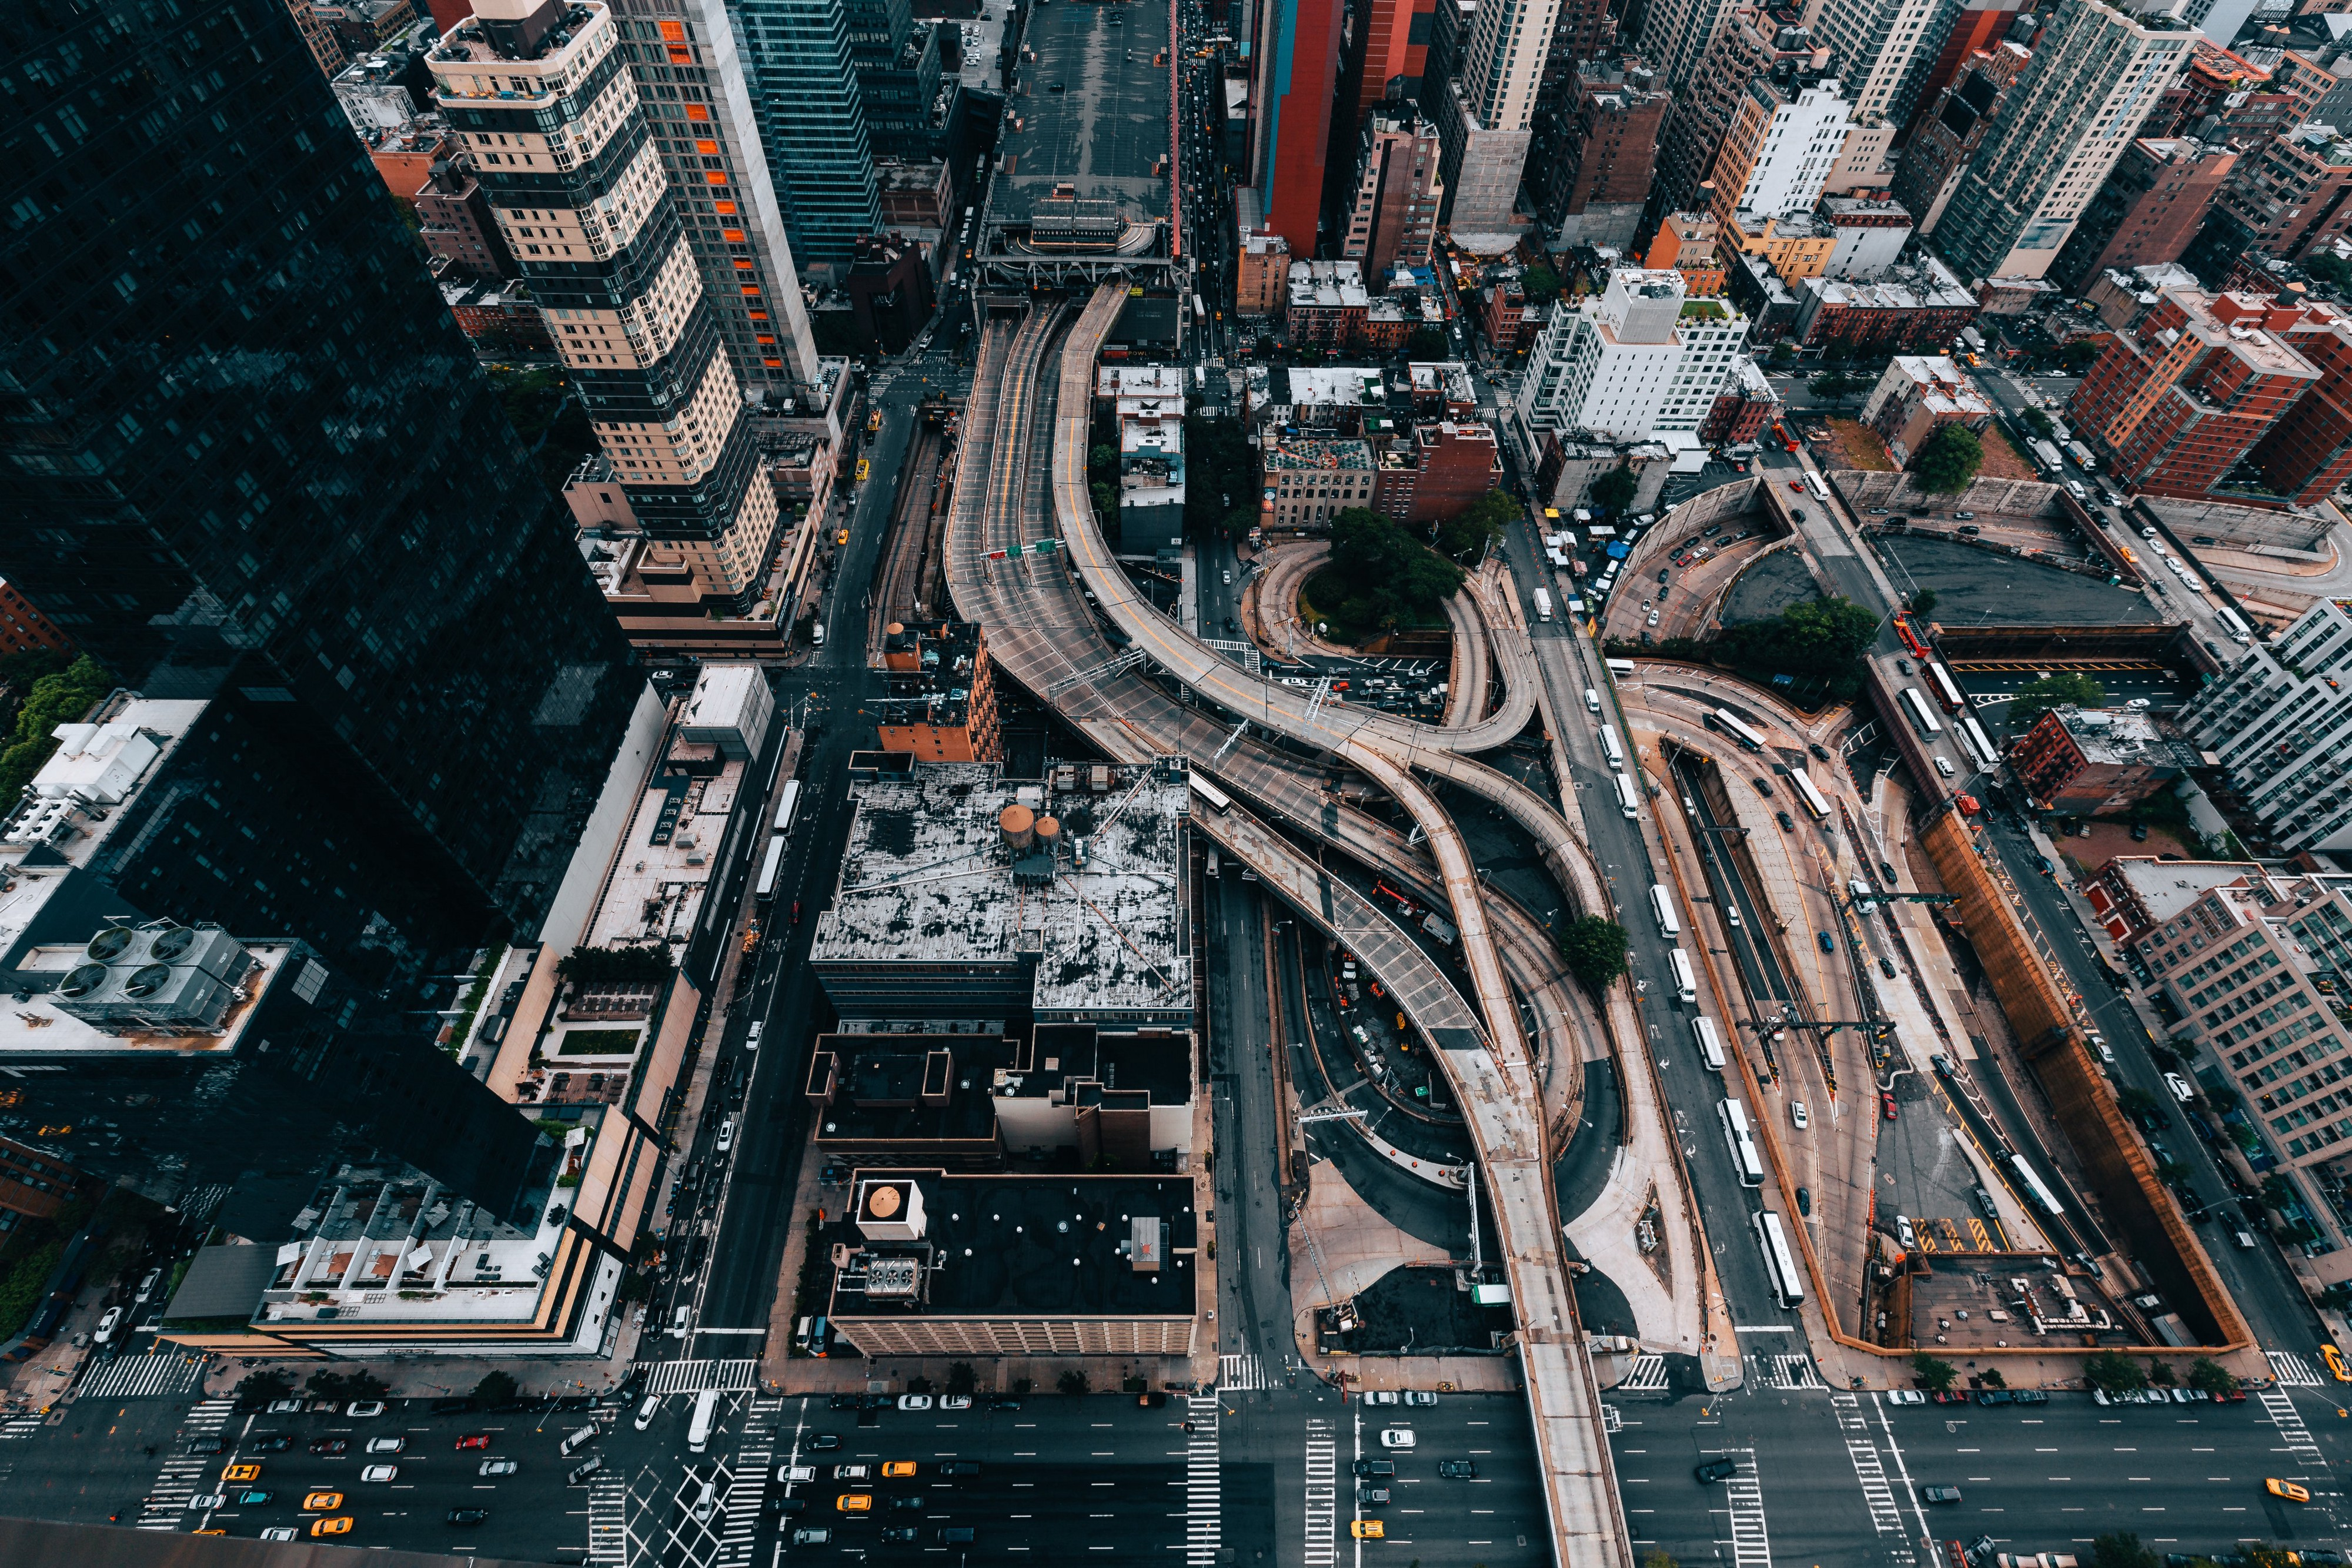 Looking straight down at large city streets and overpasses in an urban center.